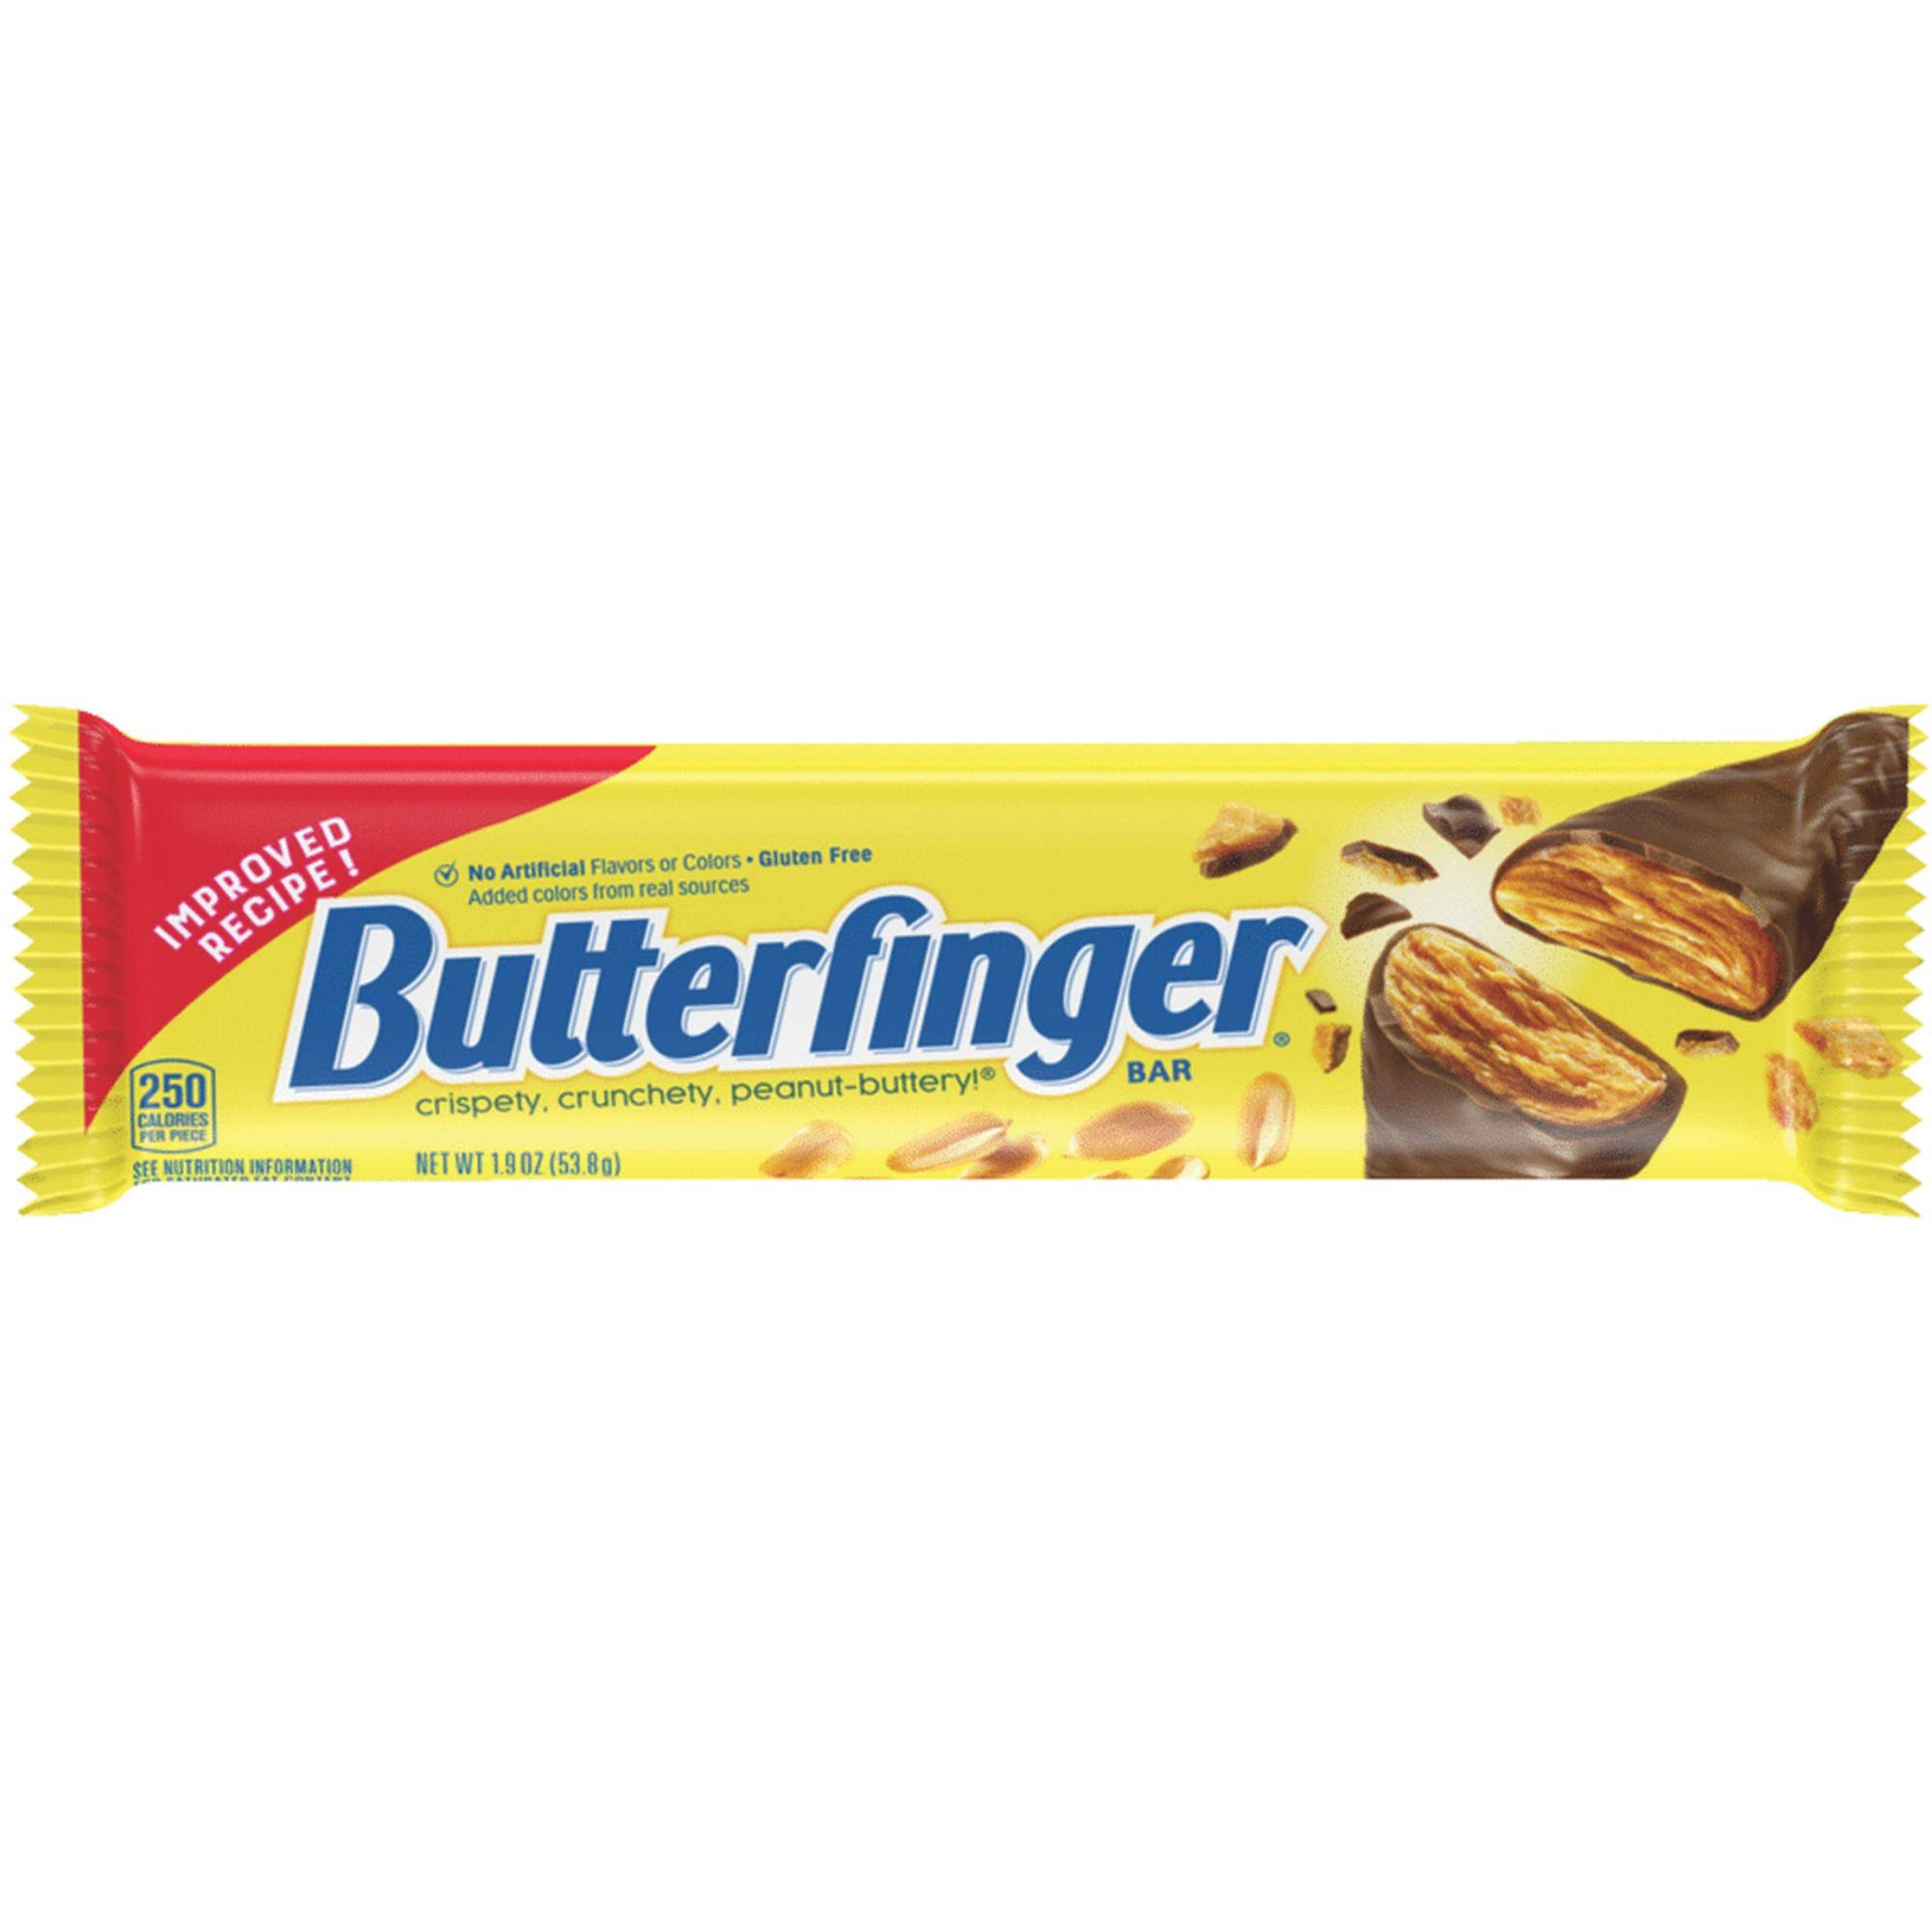 Butterfinger Bar - 1.9 oz